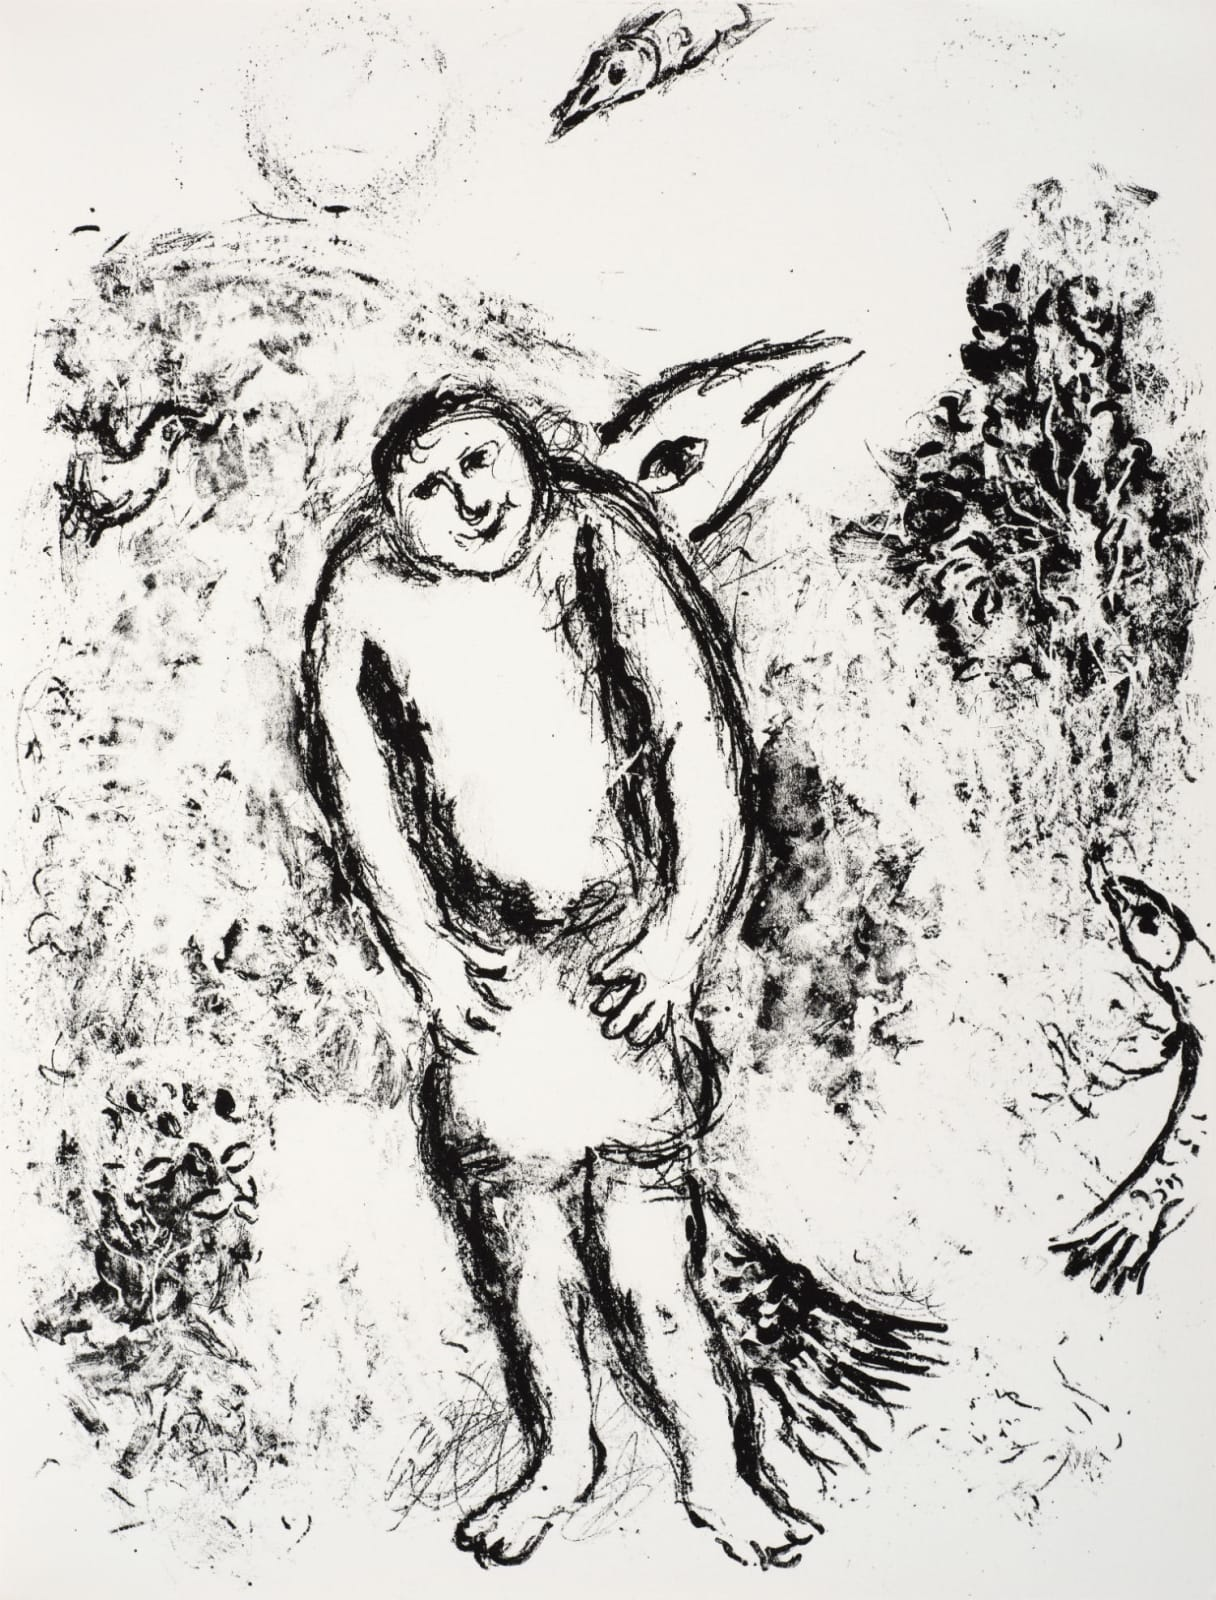 Marc Chagall (1887-1985) Caliban conjoined to a huge Fish (Series: Shakespeare The Tempest) 1975 Lithograph 42.5 x 32.5 cm Ben Uri Collection © Marc Chagall estate To see and discover more about this artist click here